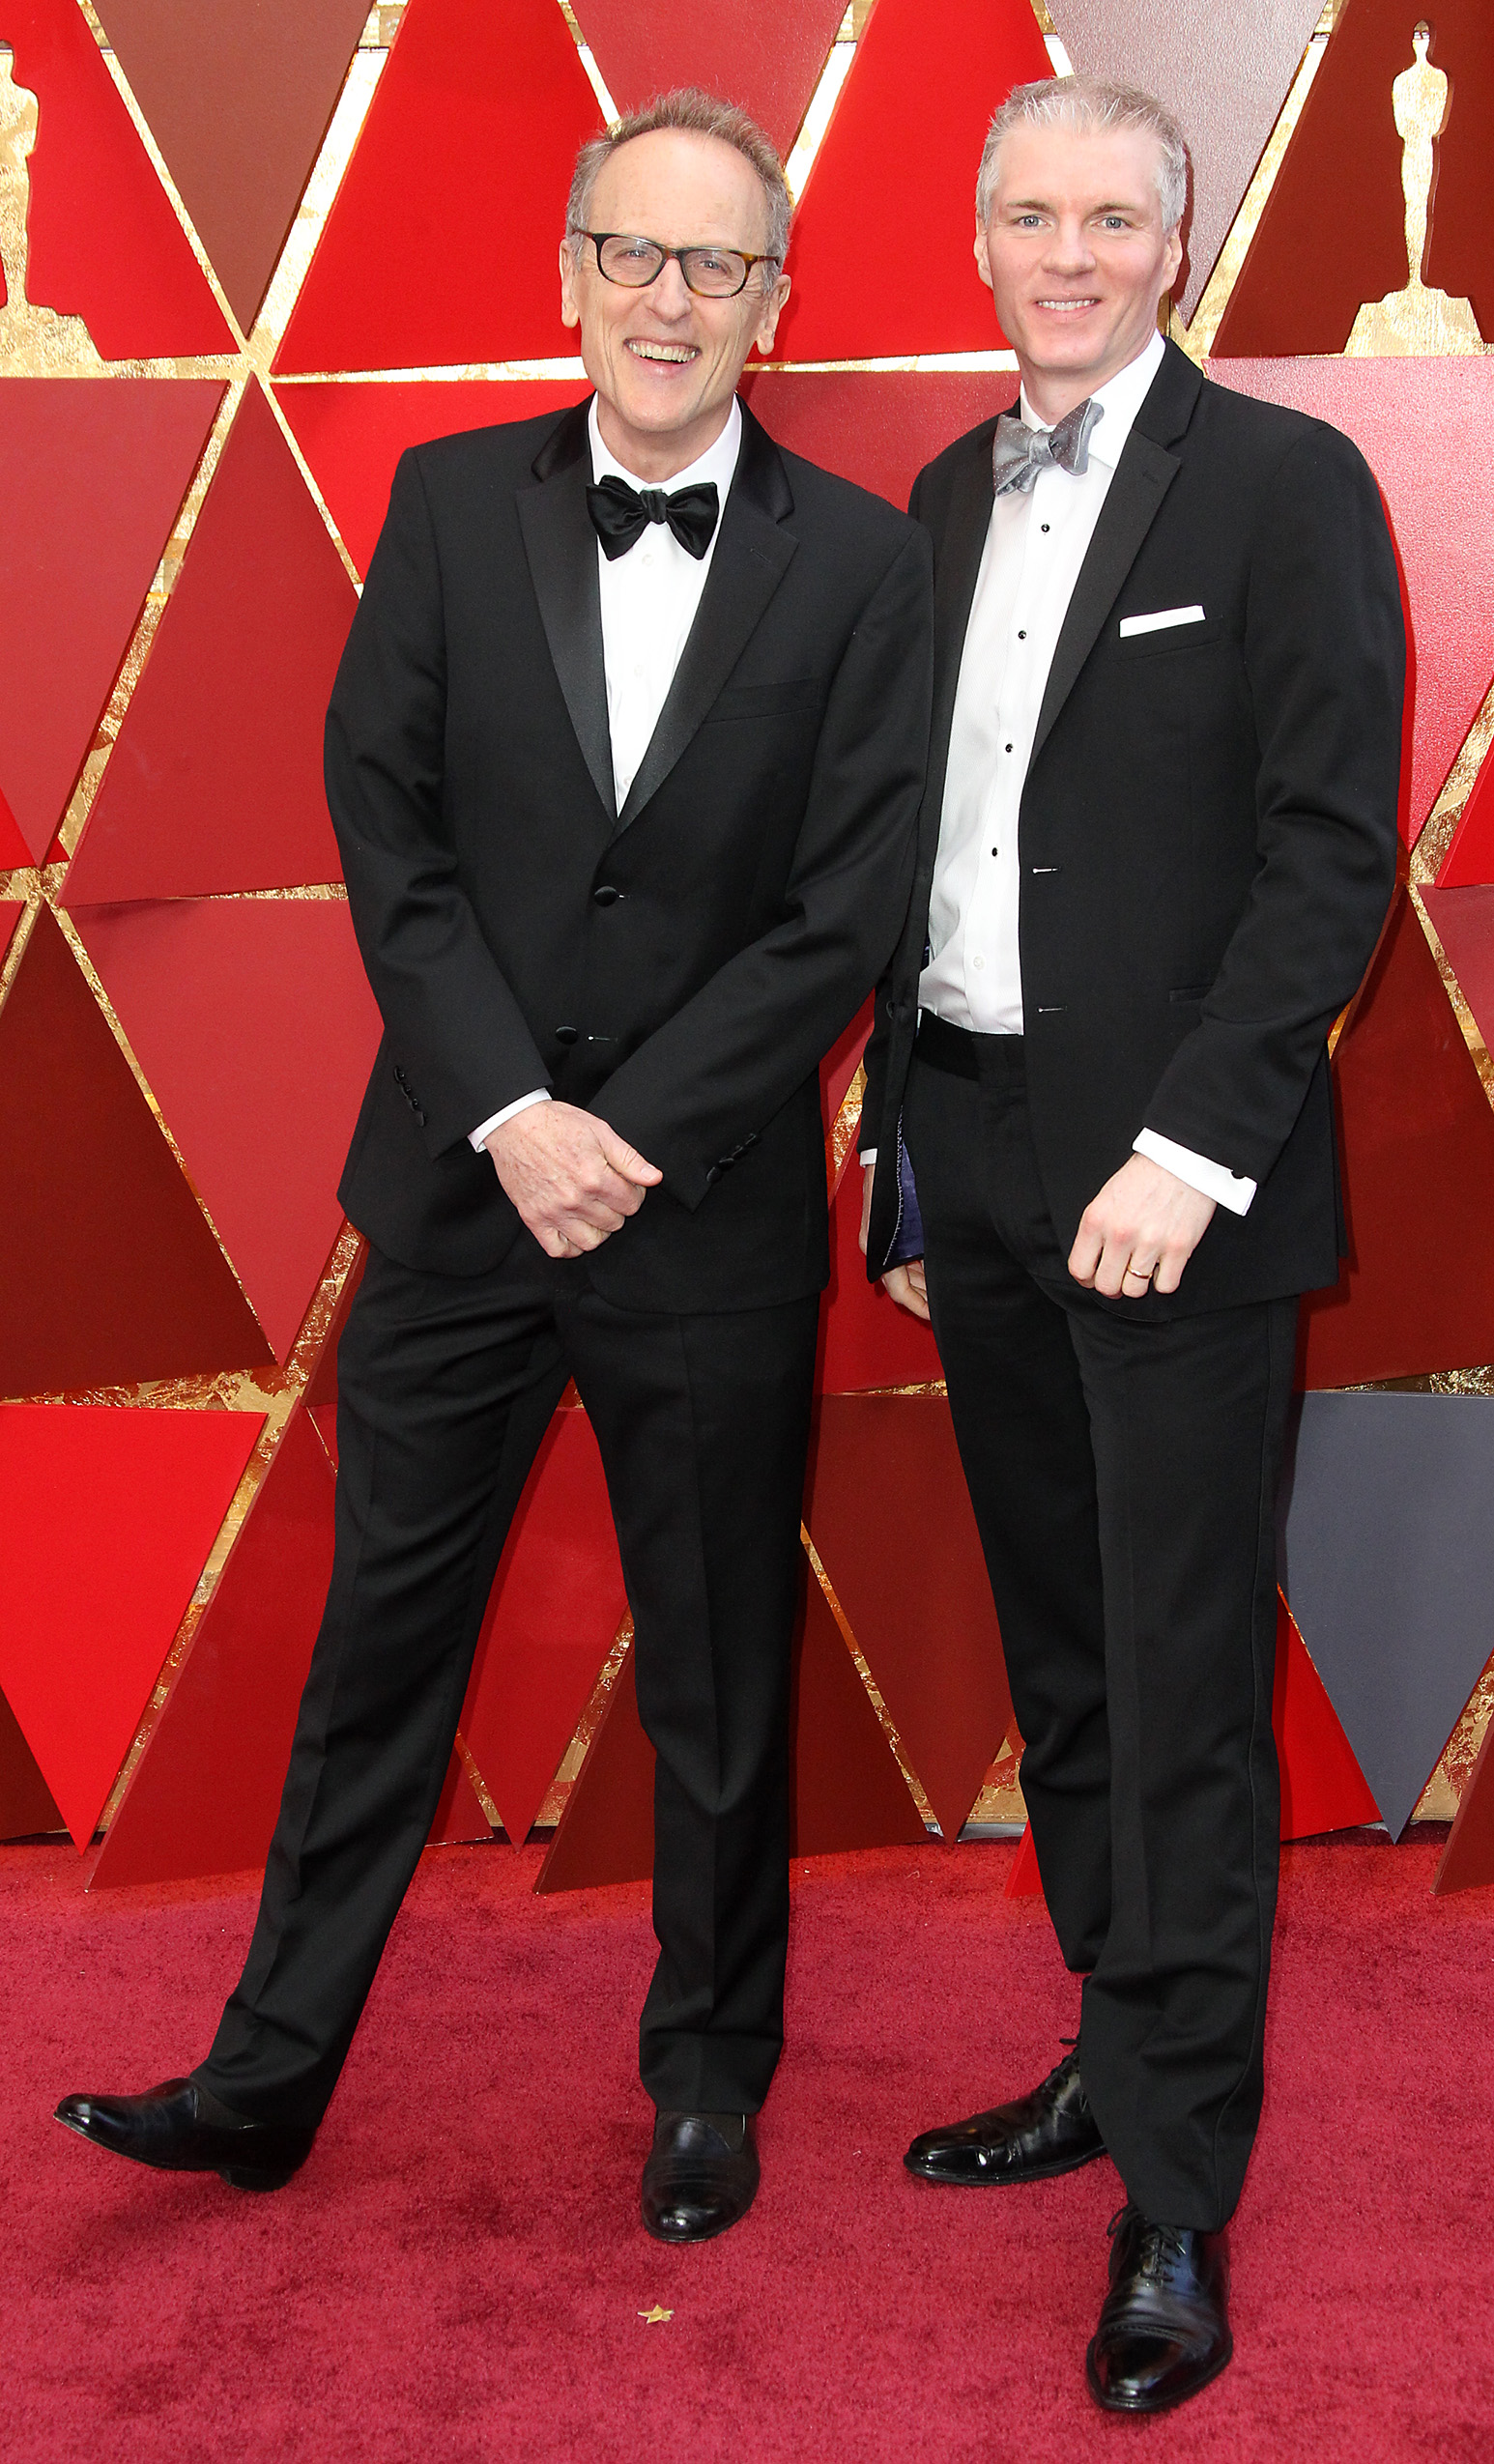 Thomas Lennon and Brandon Chrostowski{&amp;nbsp;}arrive at the 90th Annual Academy Awards (Oscars) held at the Dolby Theater in Hollywood, California. (Image: Adriana M. Barraza/WENN.com) <p></p>